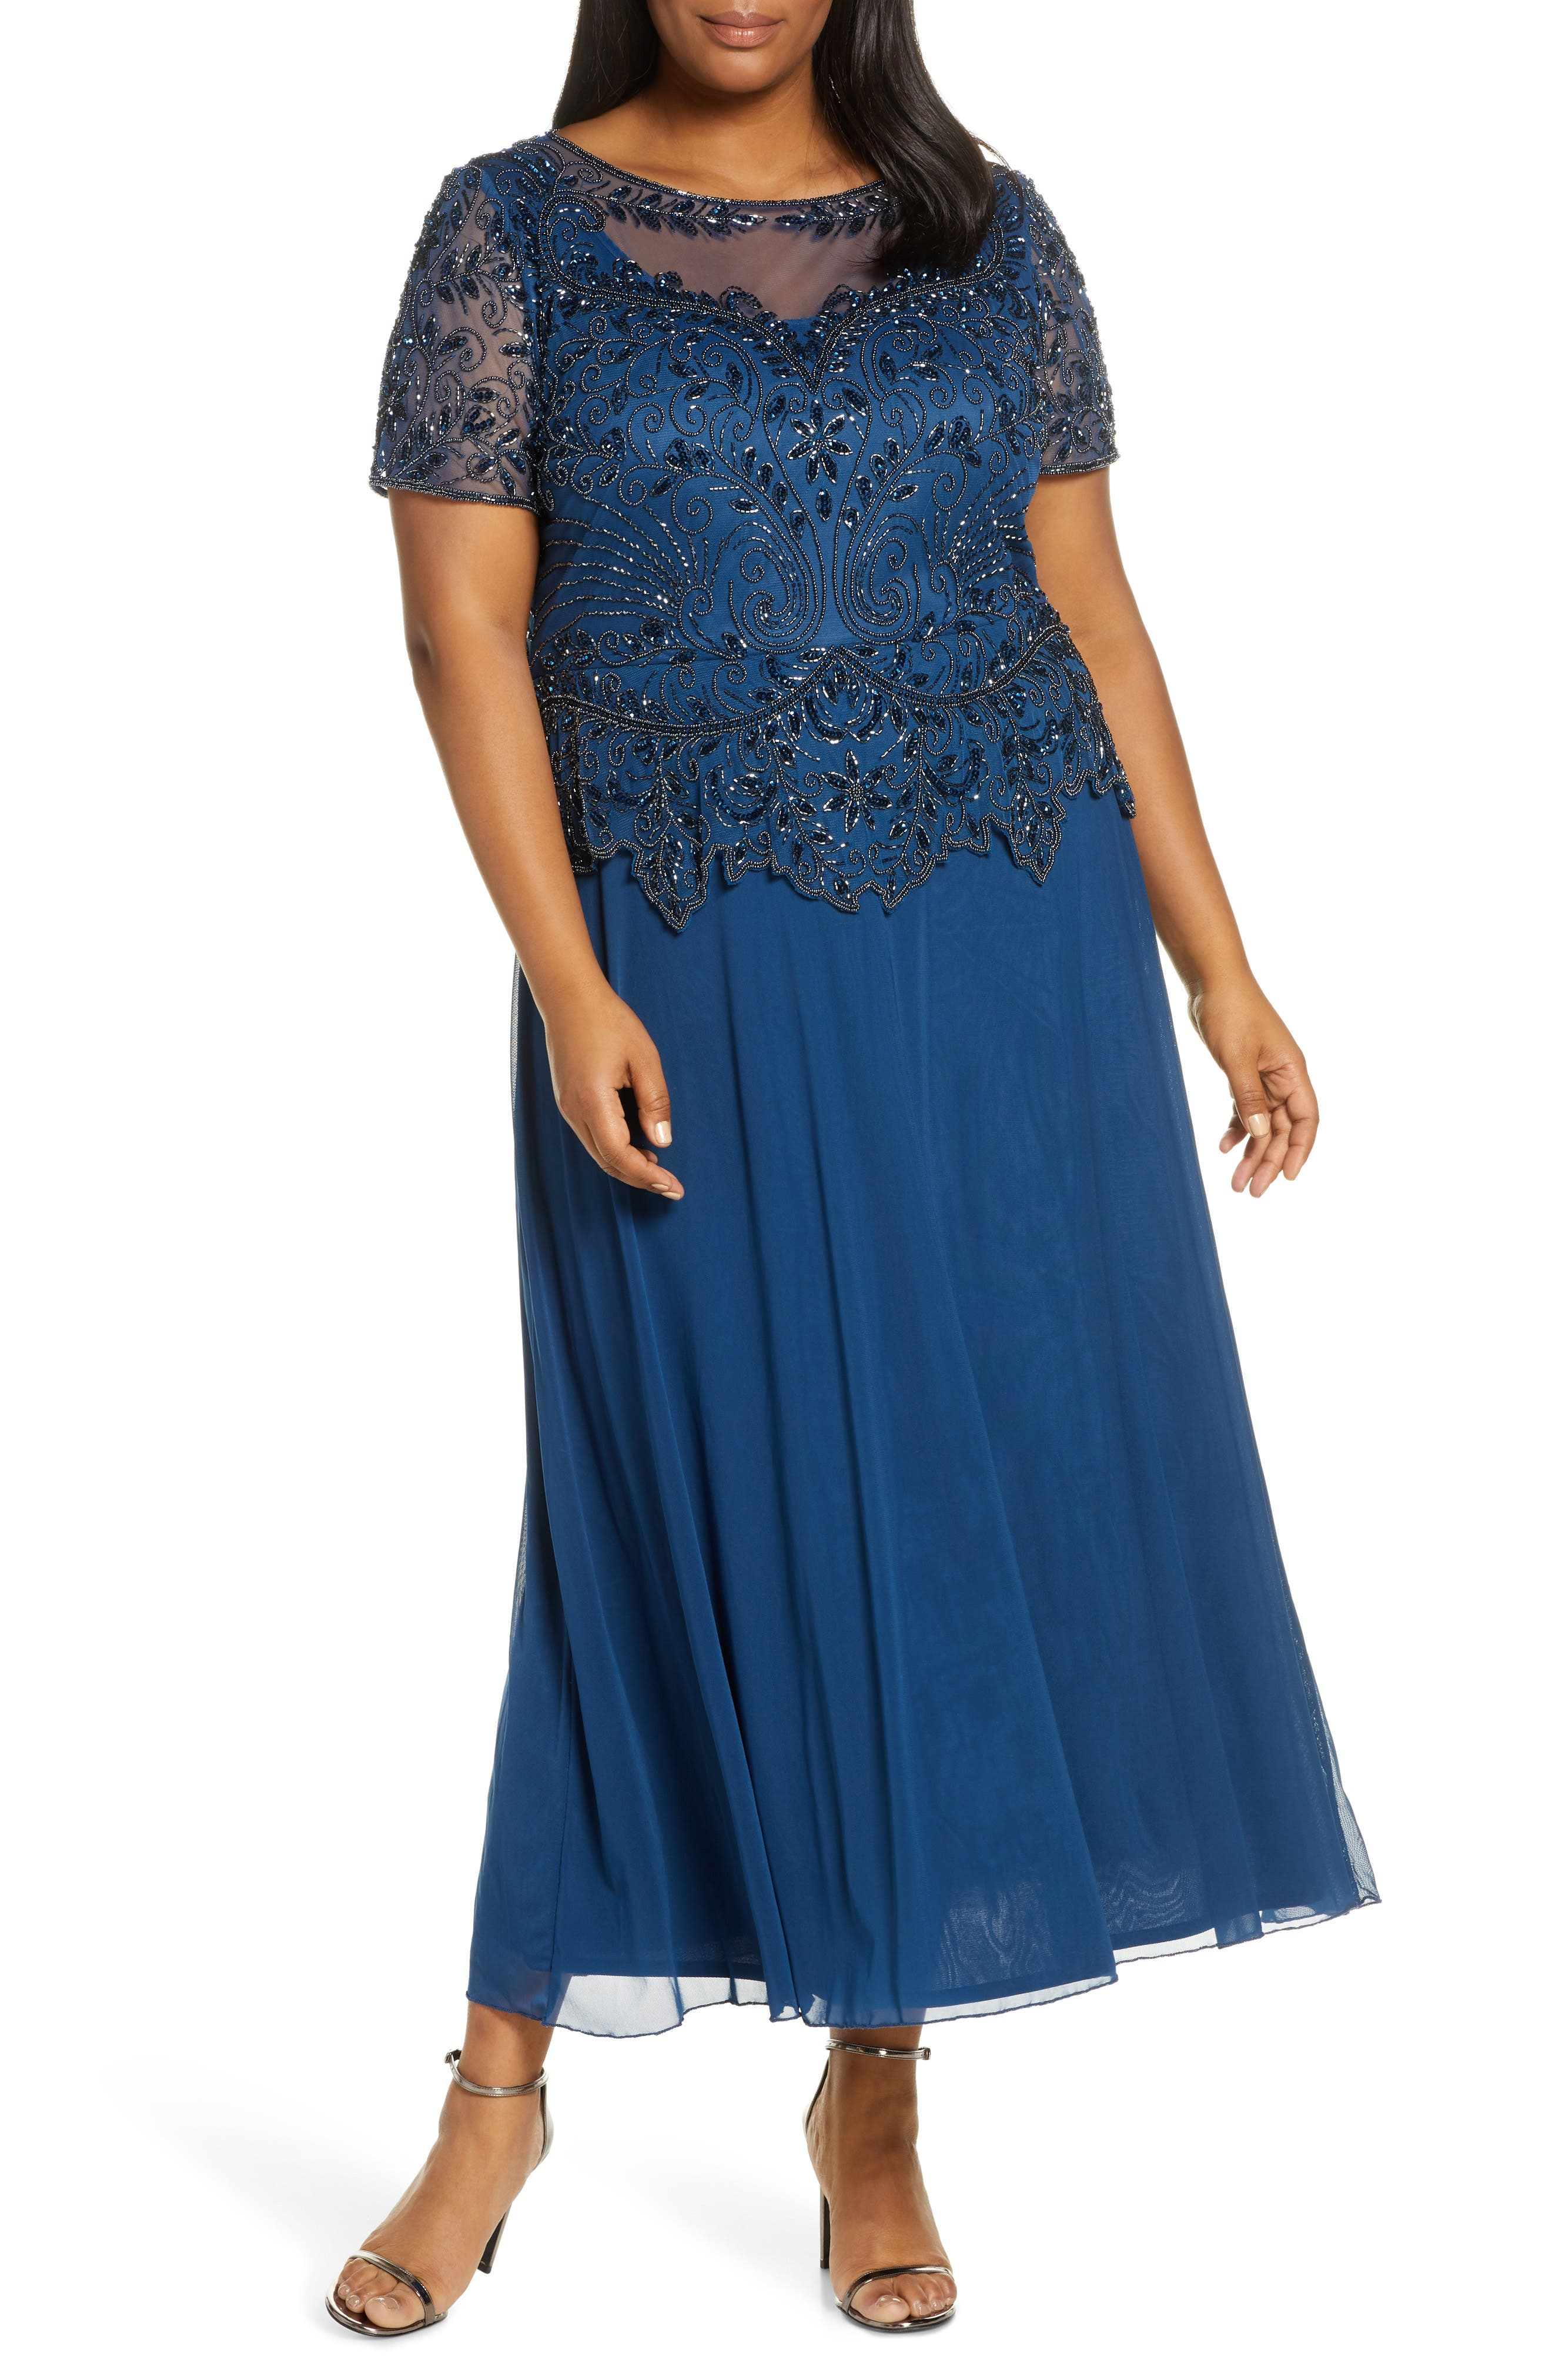 Vintage 1920s Dresses – Where to Buy Plus Size Womens Pisarro Nights Embellished Mesh Mock Two-Piece Gown Size 20W - Blue $228.00 AT vintagedancer.com